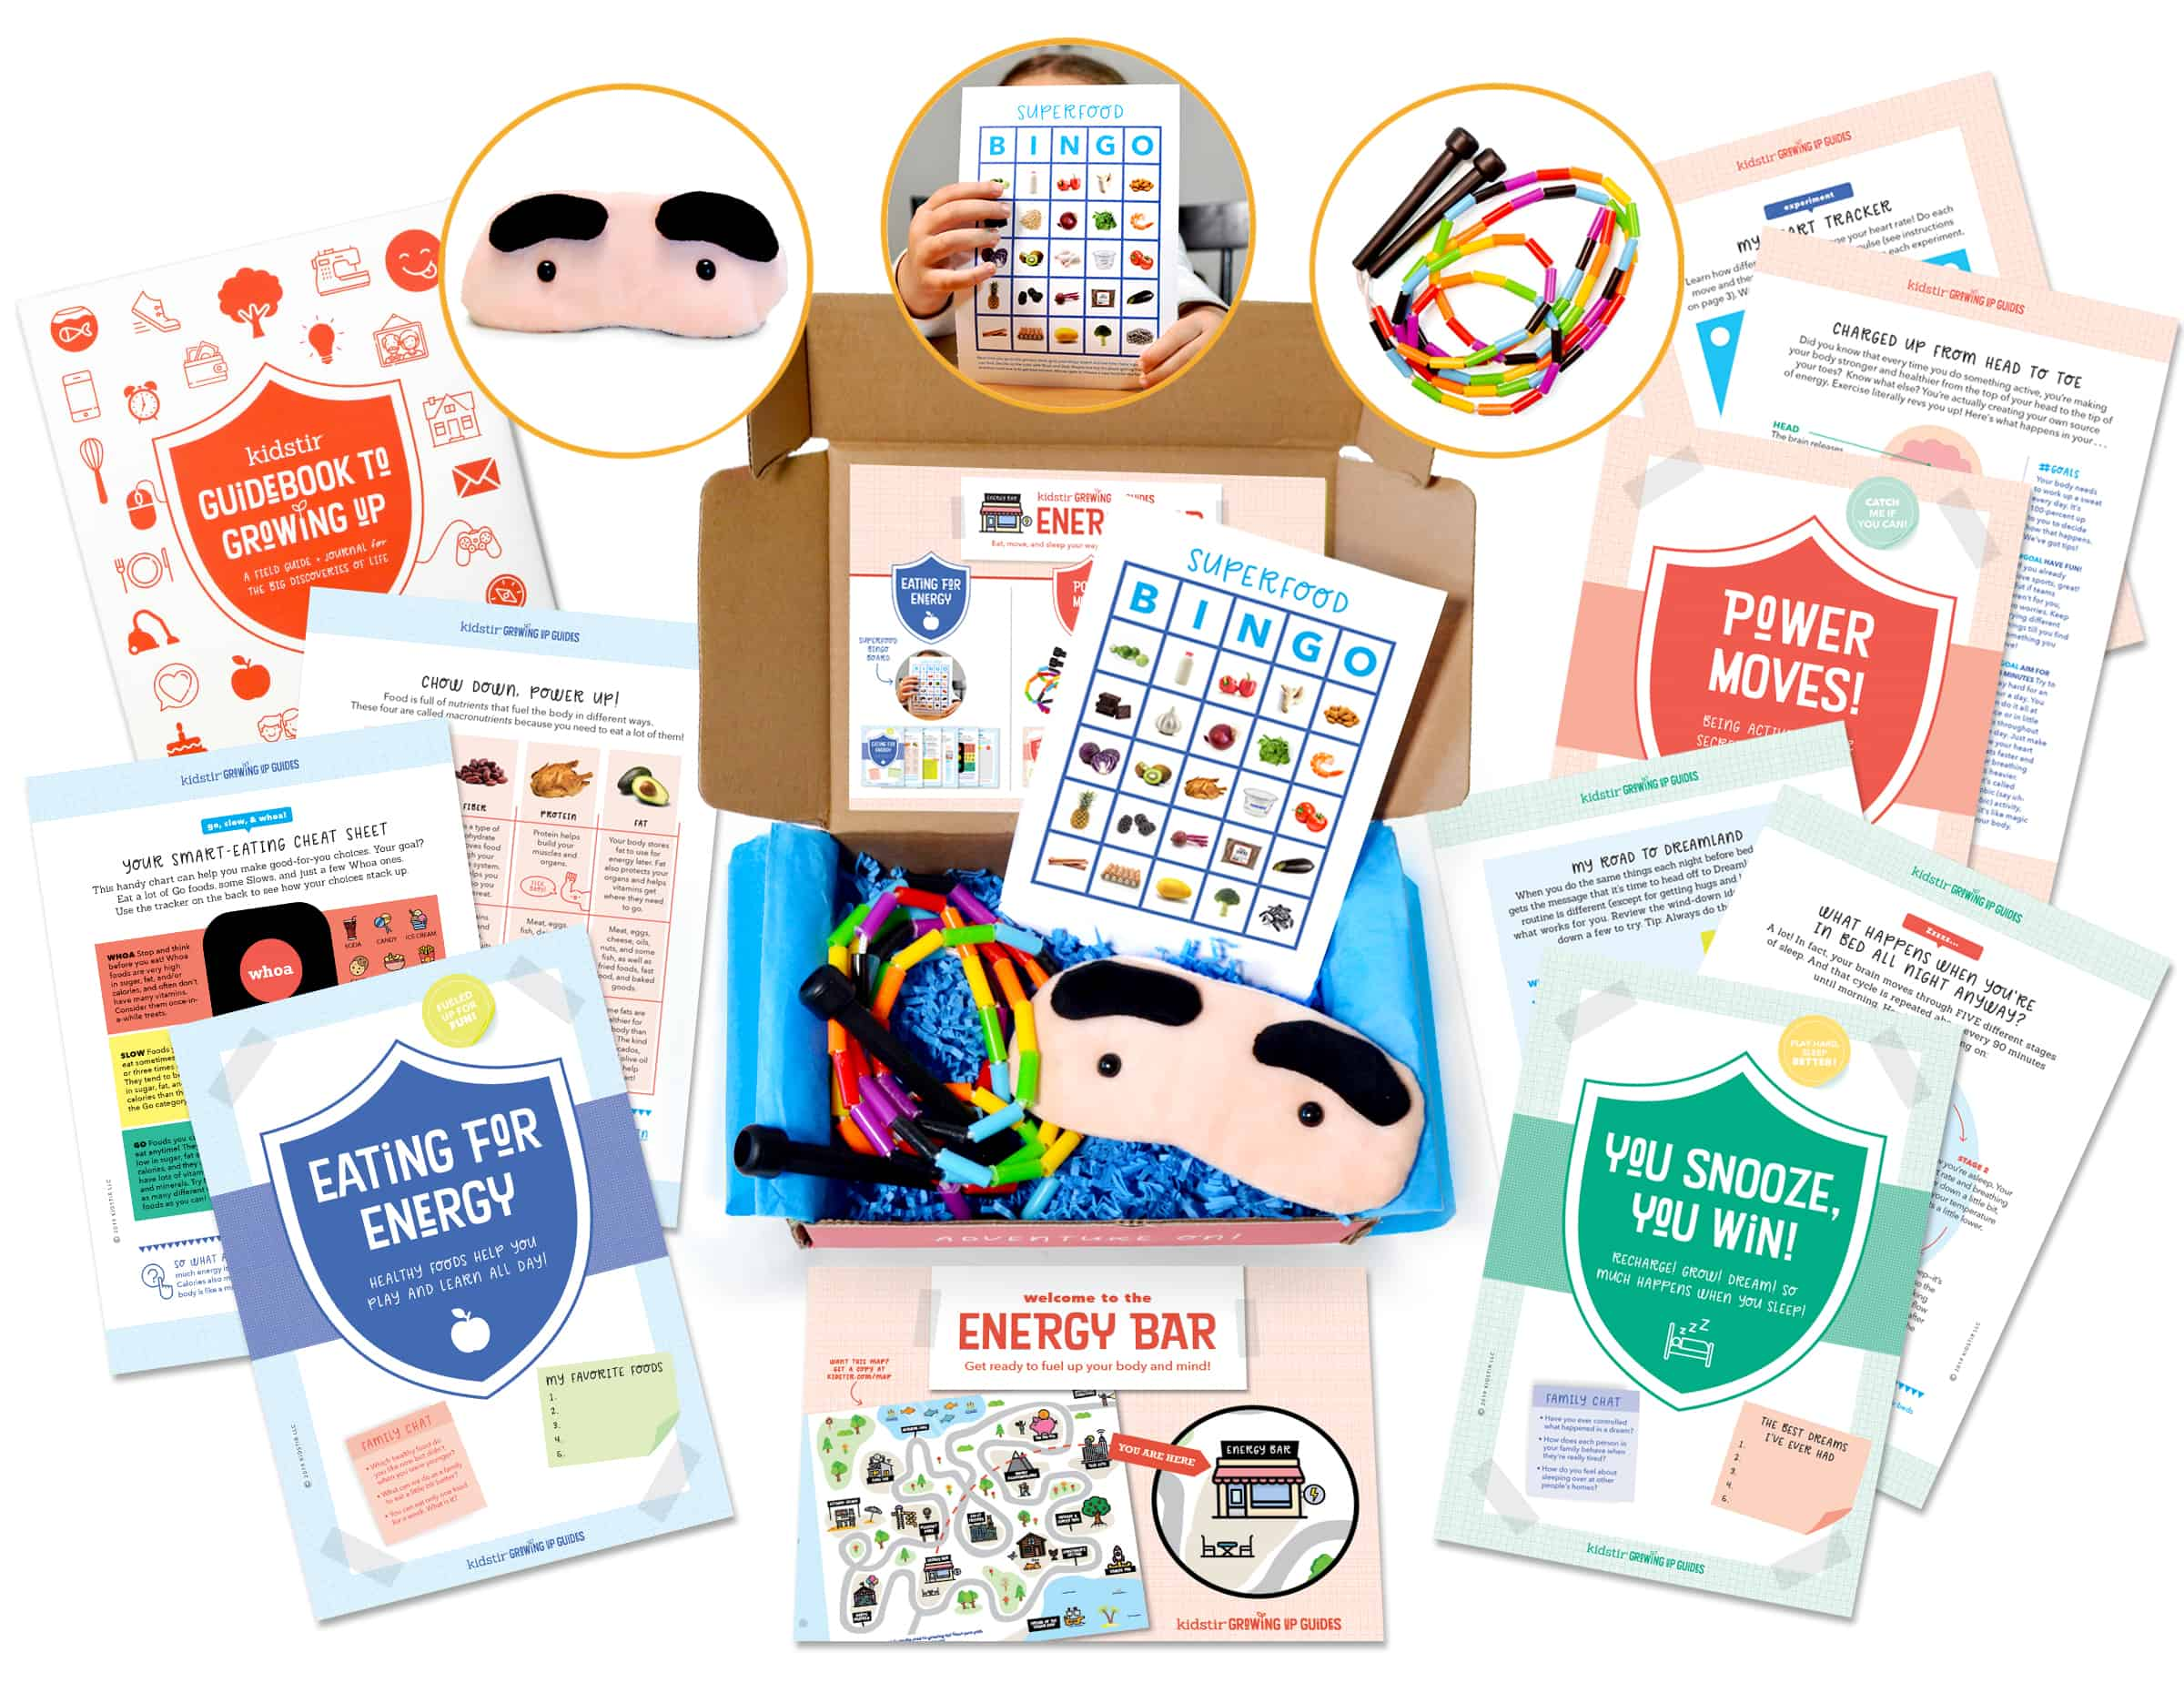 Kidstir Growing Up Guides Coupon: 50% Off First Month!